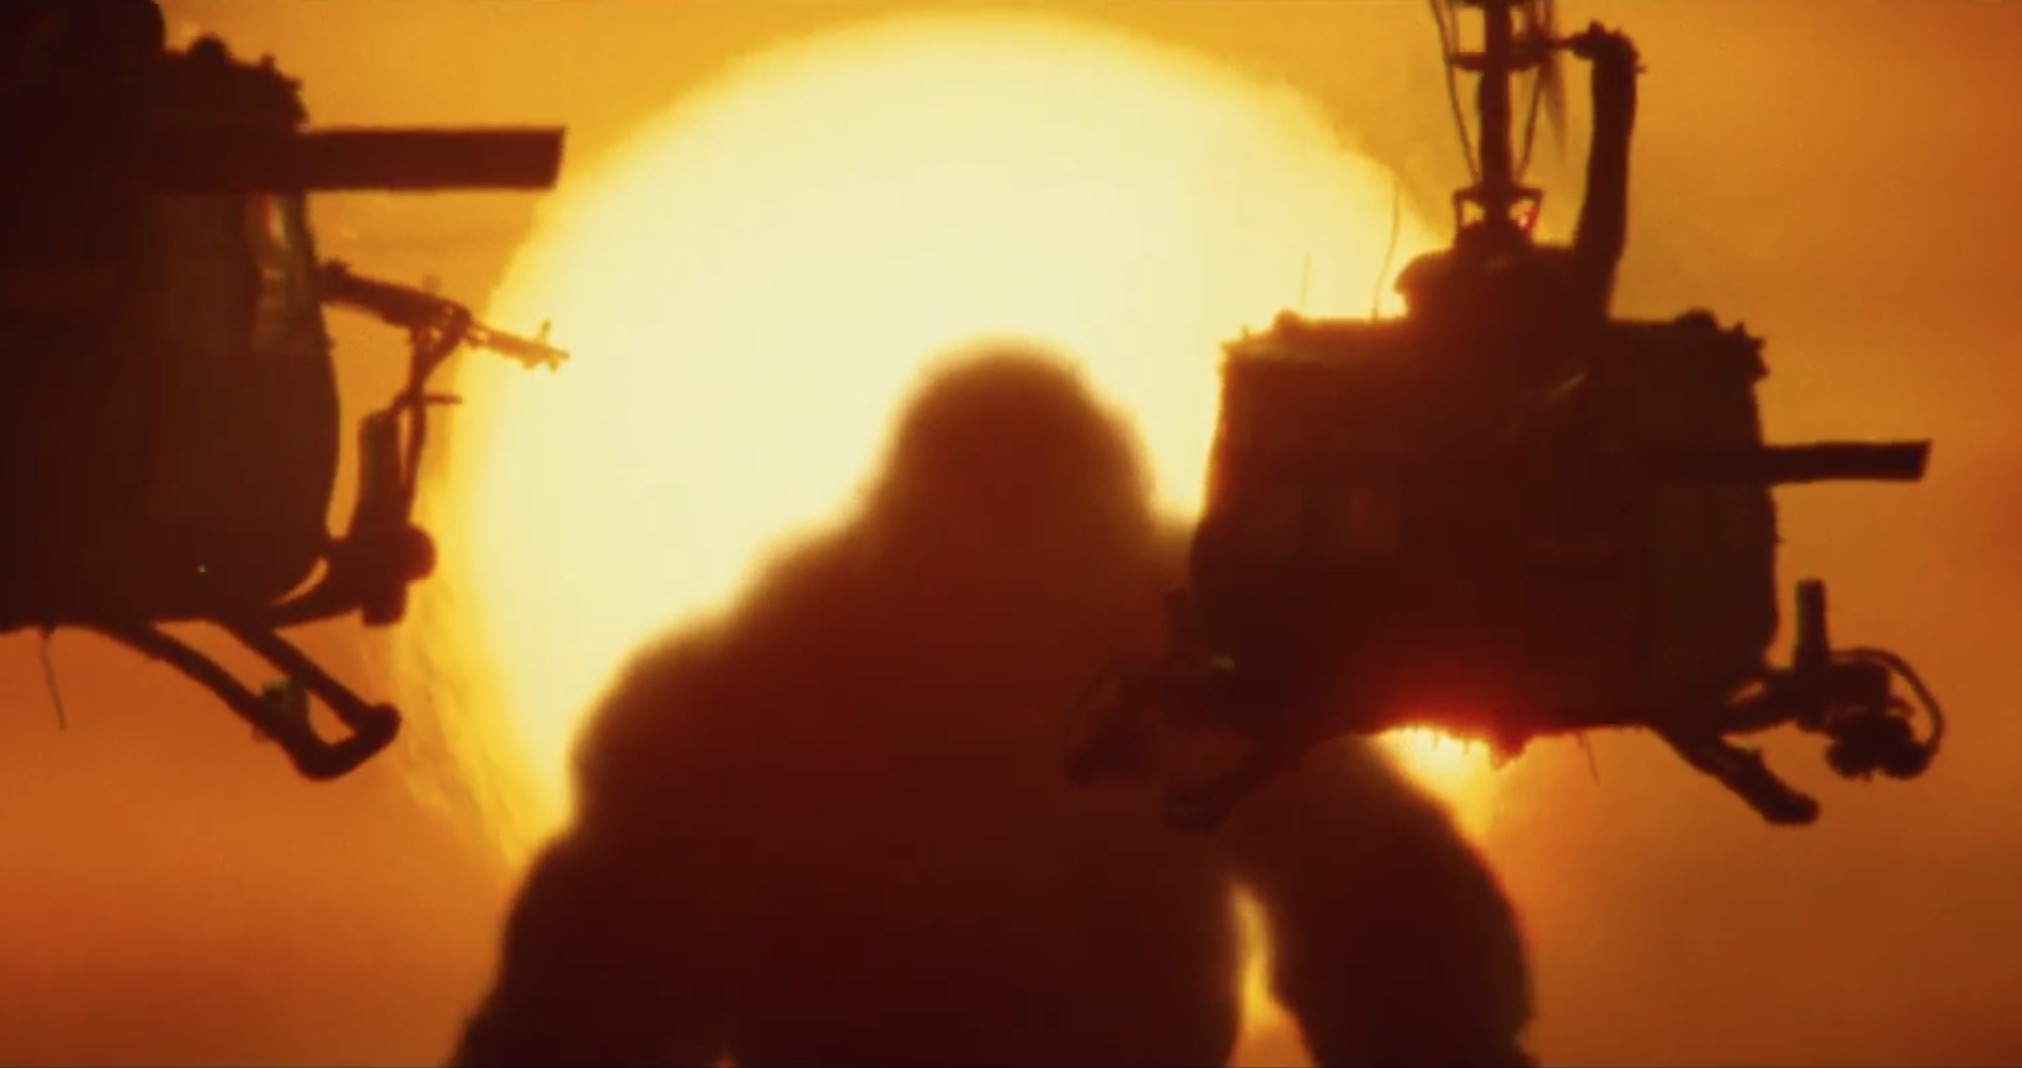 All Hail the King, Baby! The Trailer for 'Kong: Skull Island' is Here